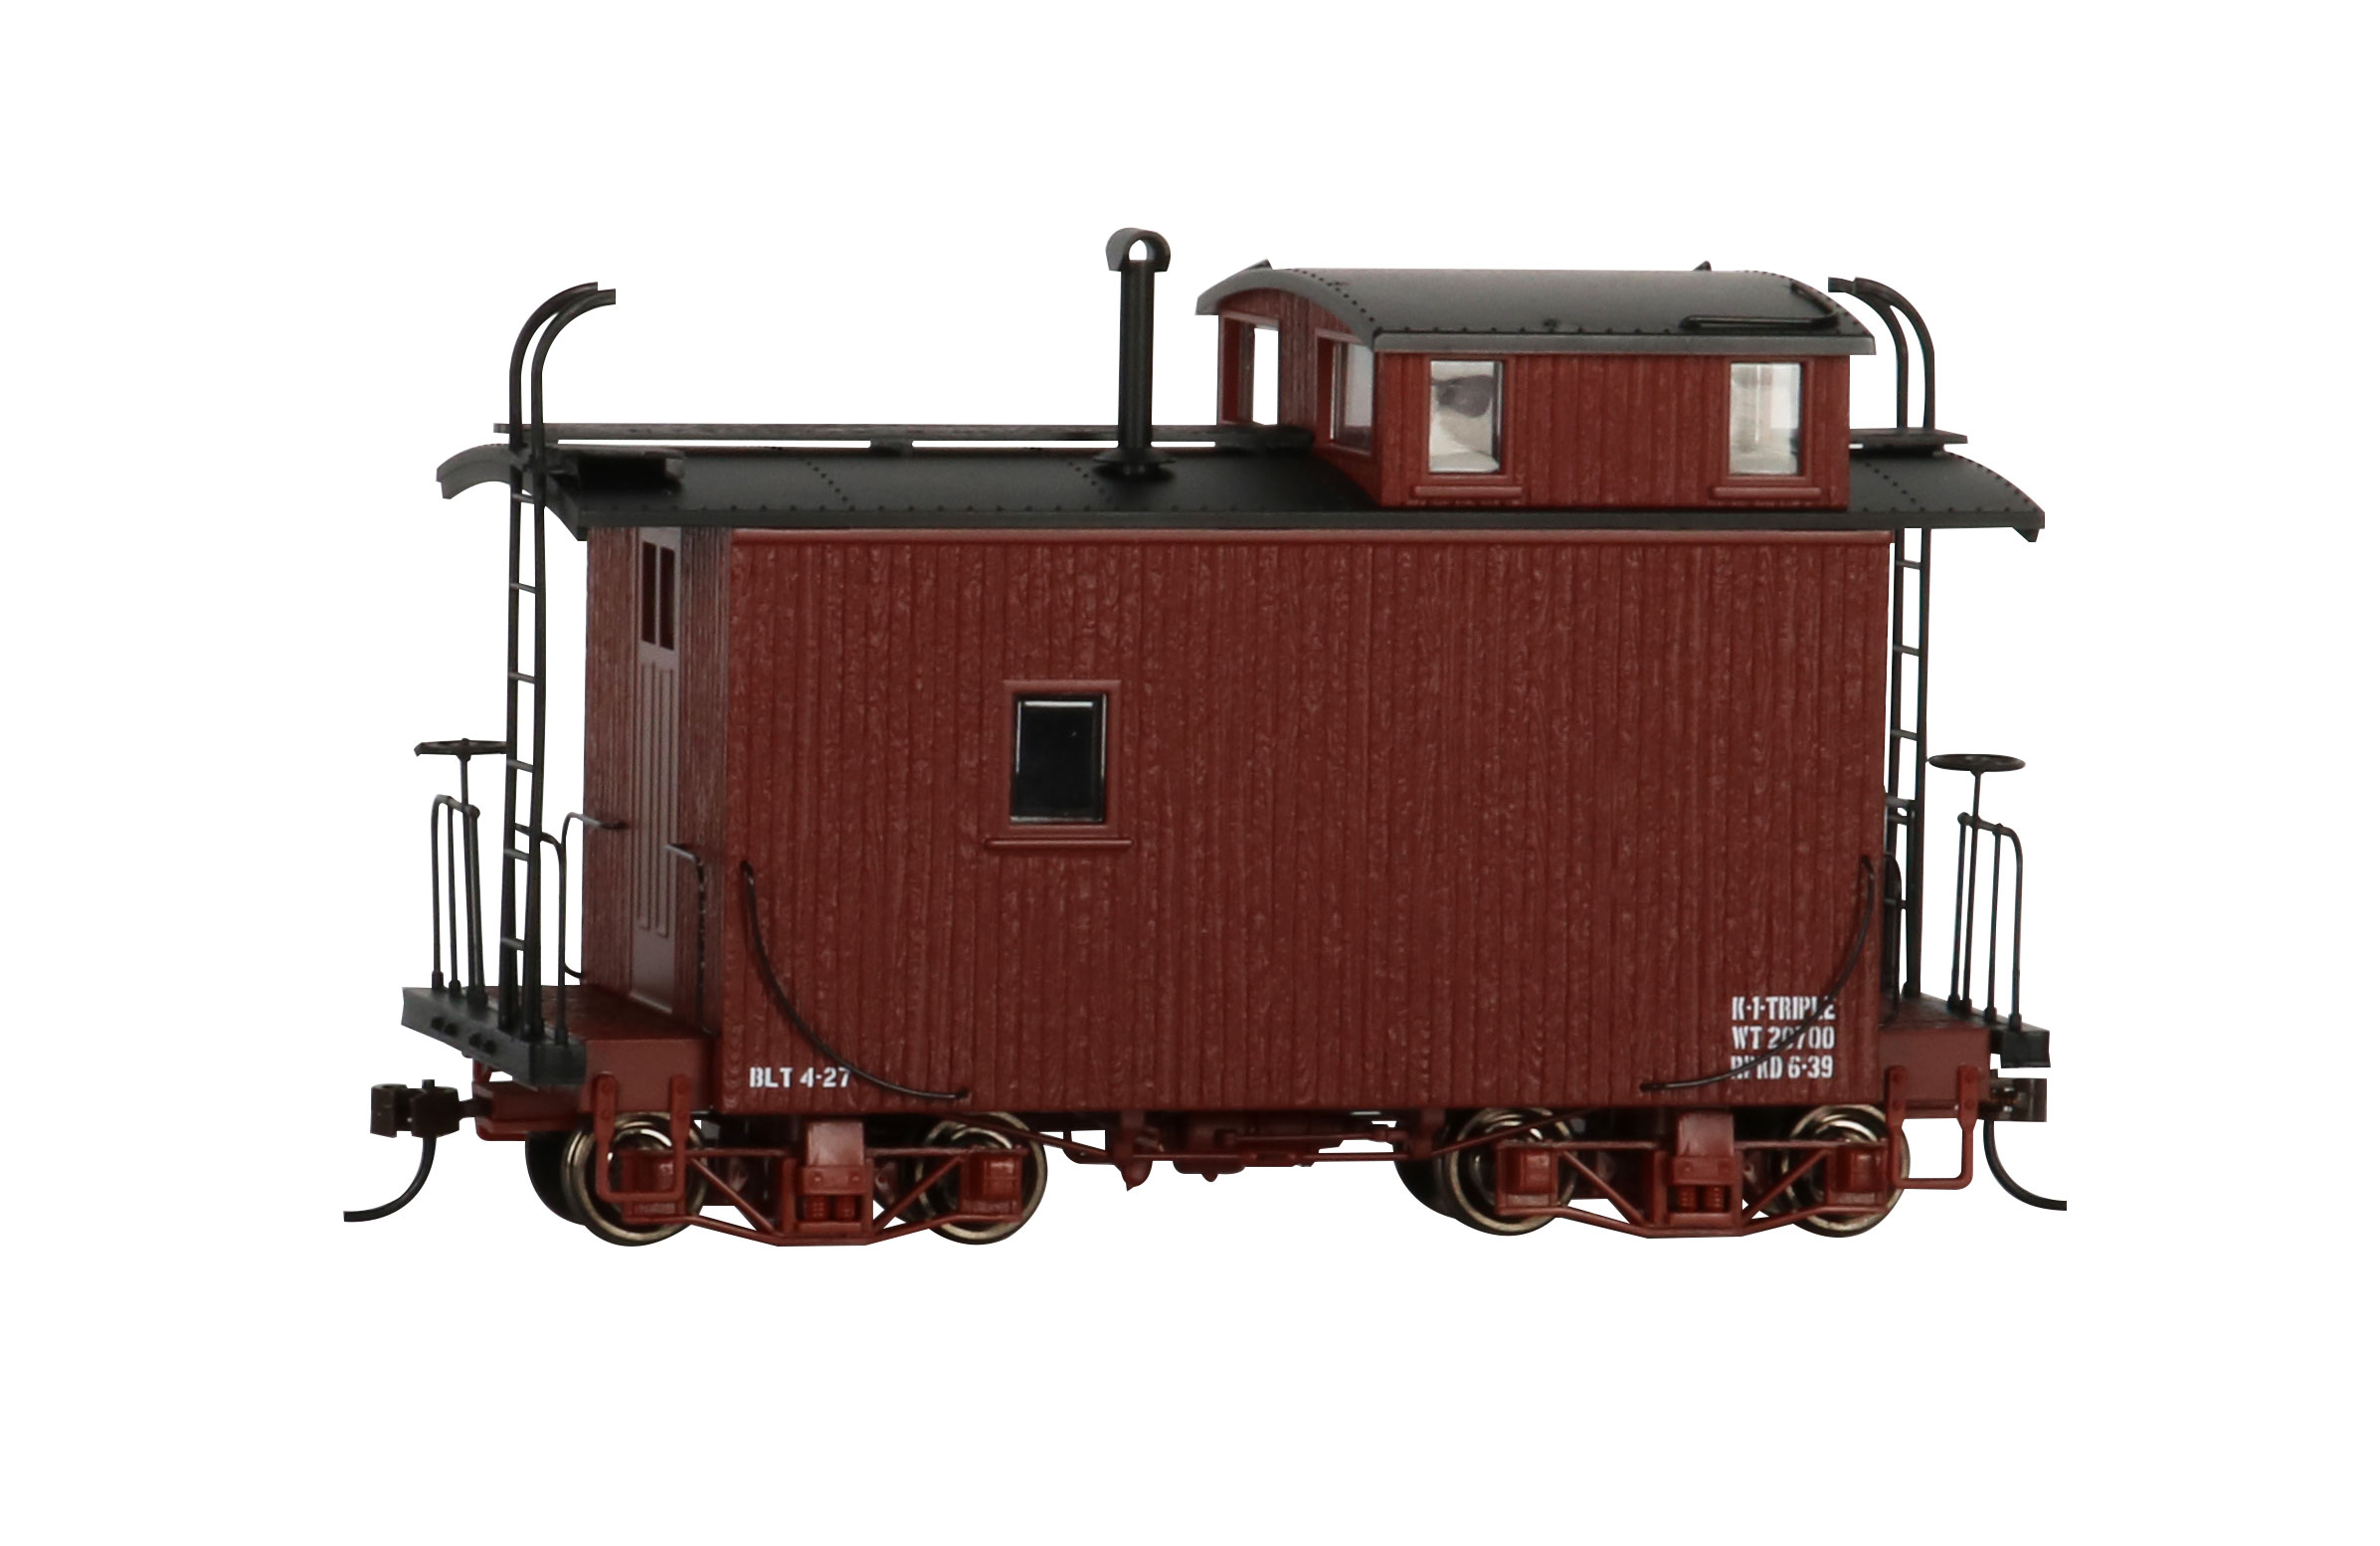 18 ft. Off-Set Cupola Caboose - Oxide Red, Data Only